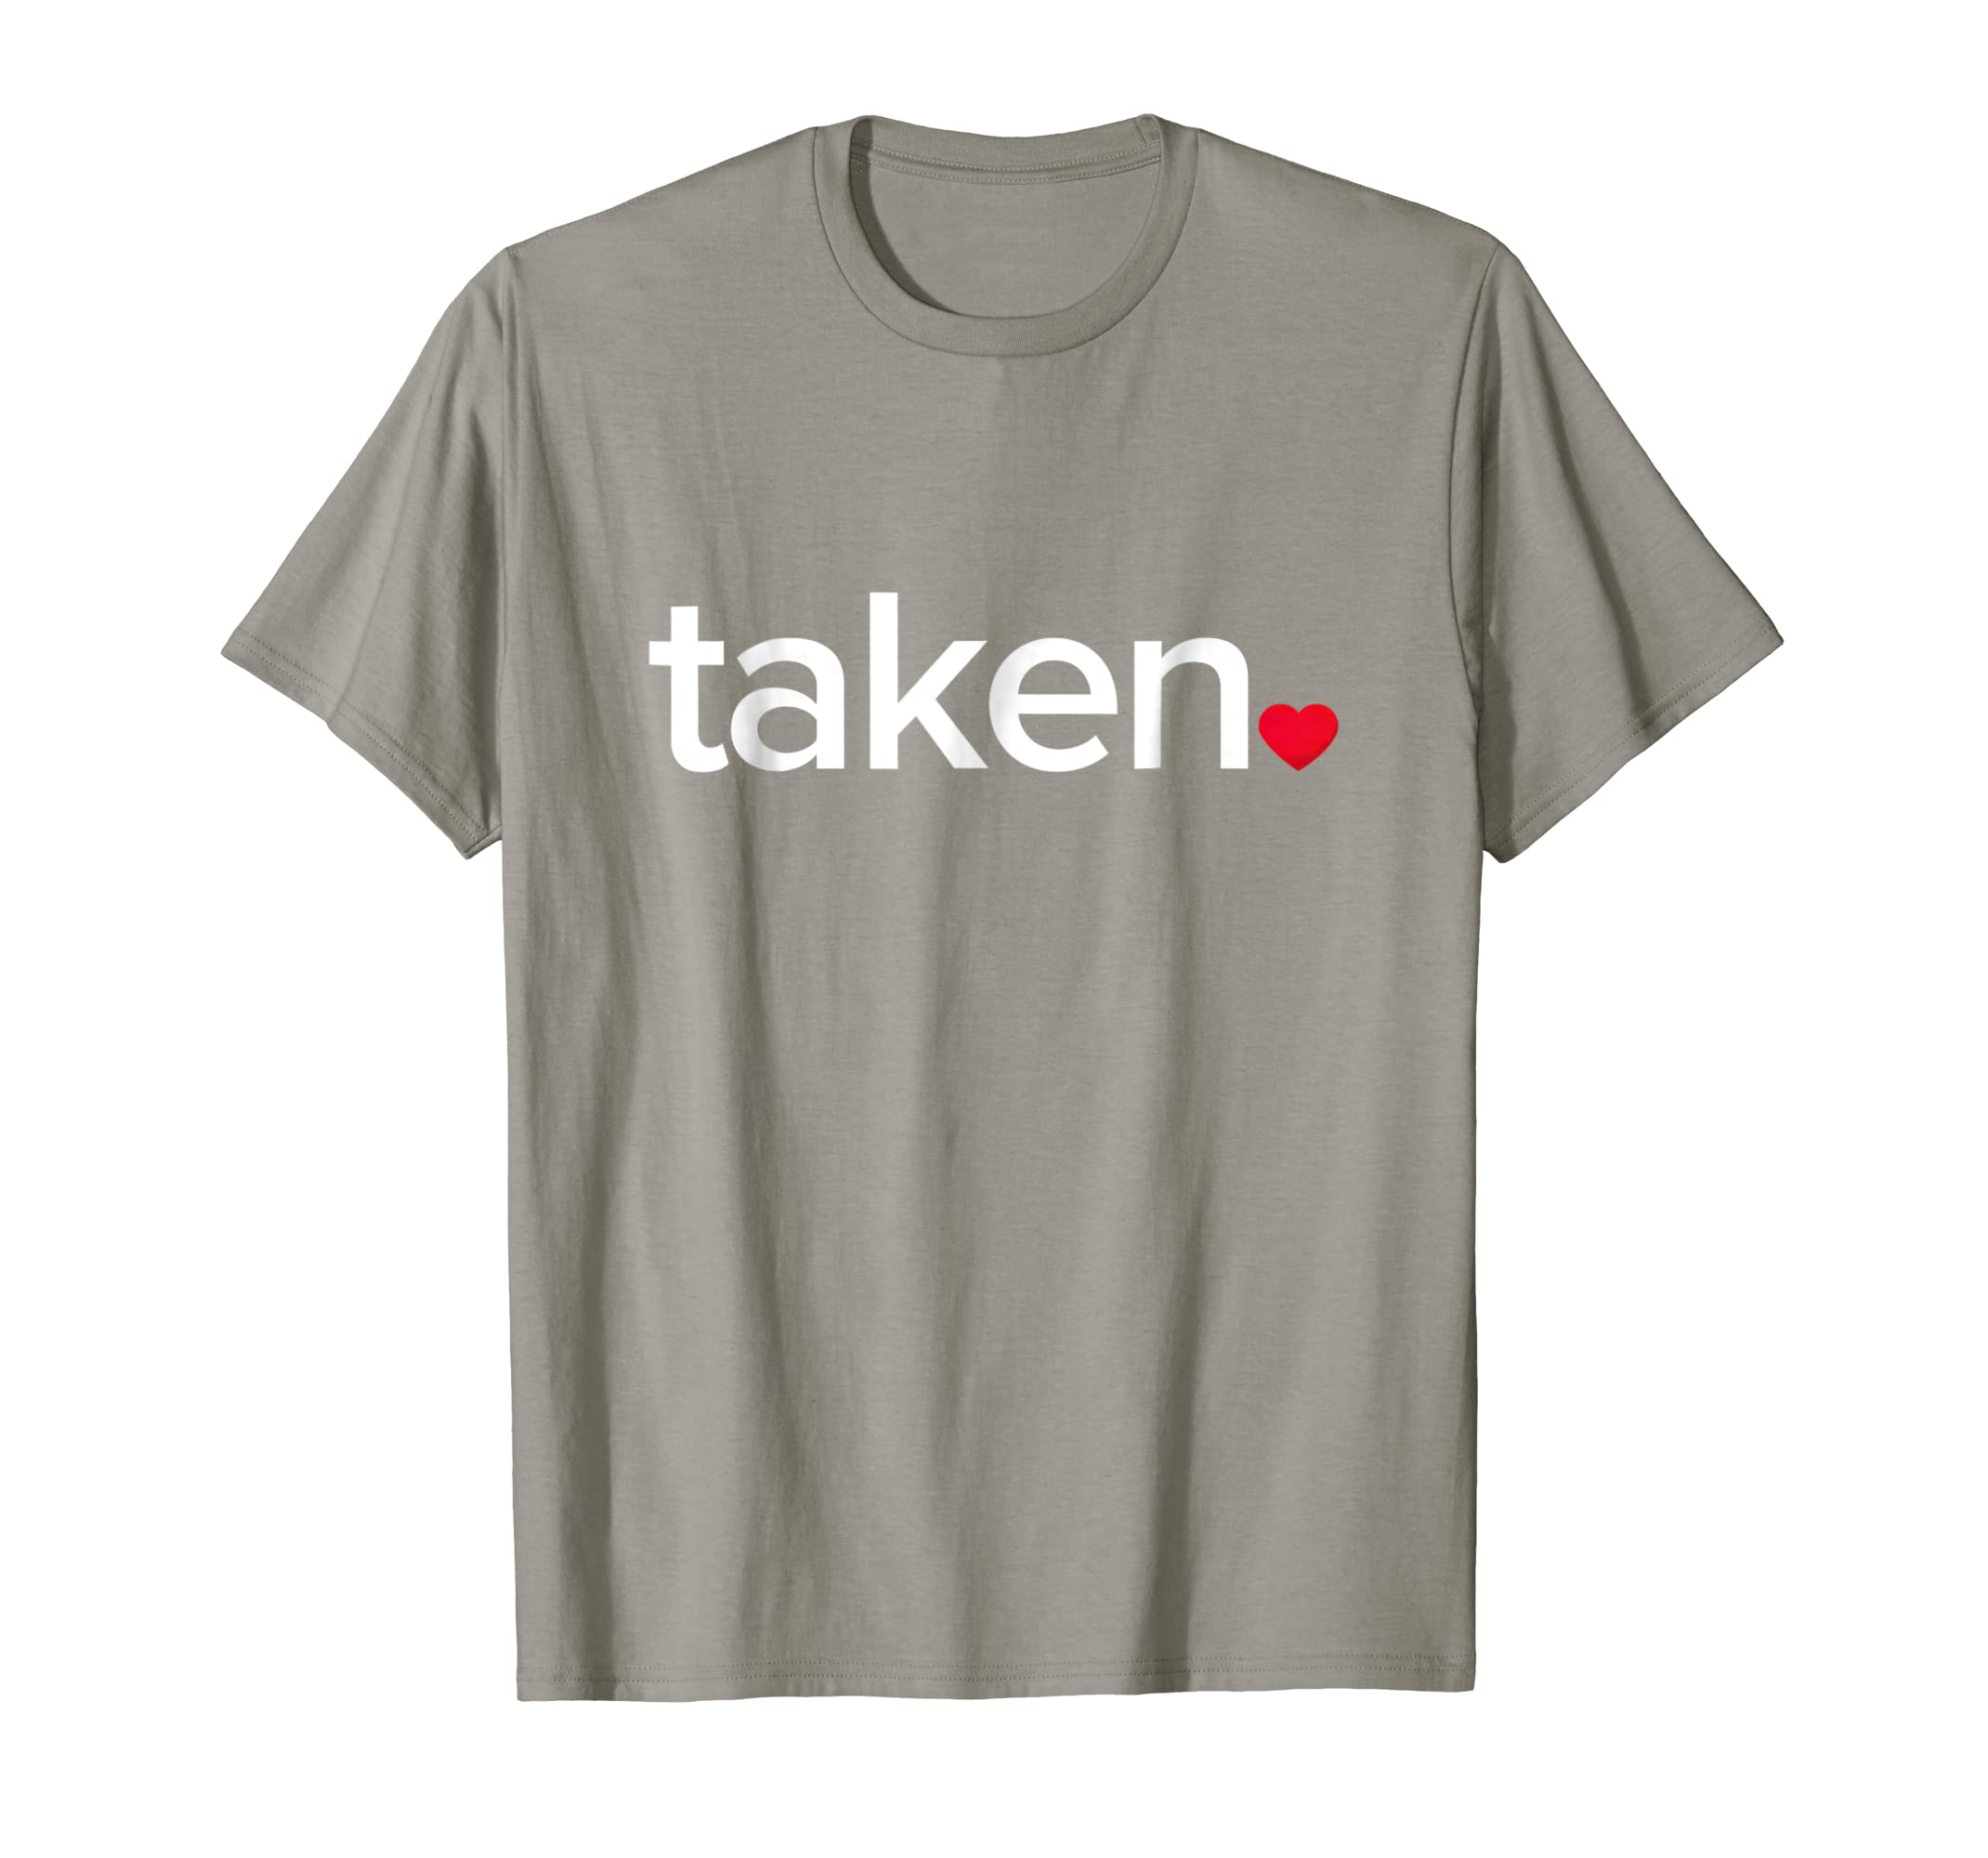 IN LOVE AND TAKEN T-SHIRT Great valentines Day tee-Yolotee